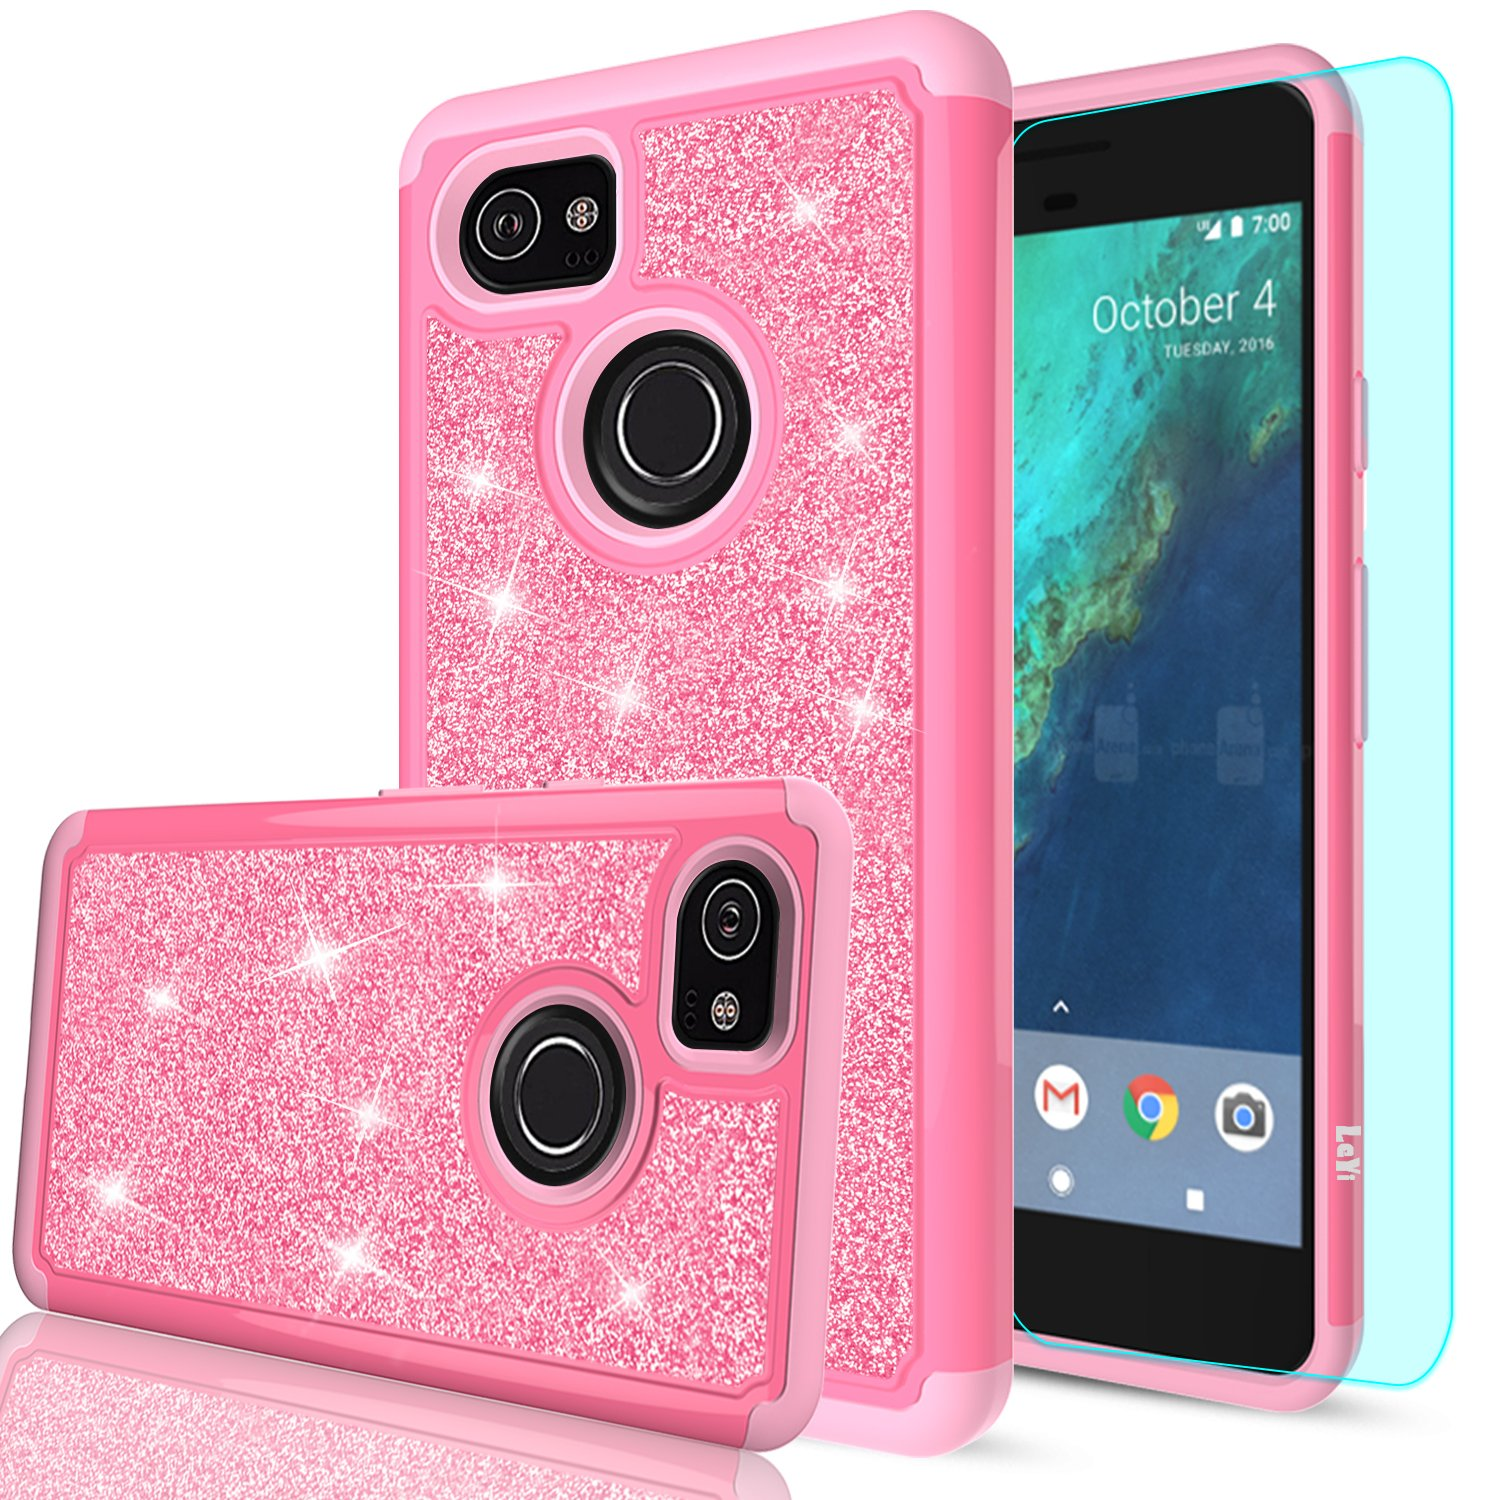 Google Pixel 2 XL Case with Tempered Glass Screen Protector [2 Pack], LeYi Hybrid Heavy Duty Protection Cute Girls Women Shockproof Glitter Bling Phone Case for Google Pixel XL 2 (2017) TP Rose Gold 4334952832